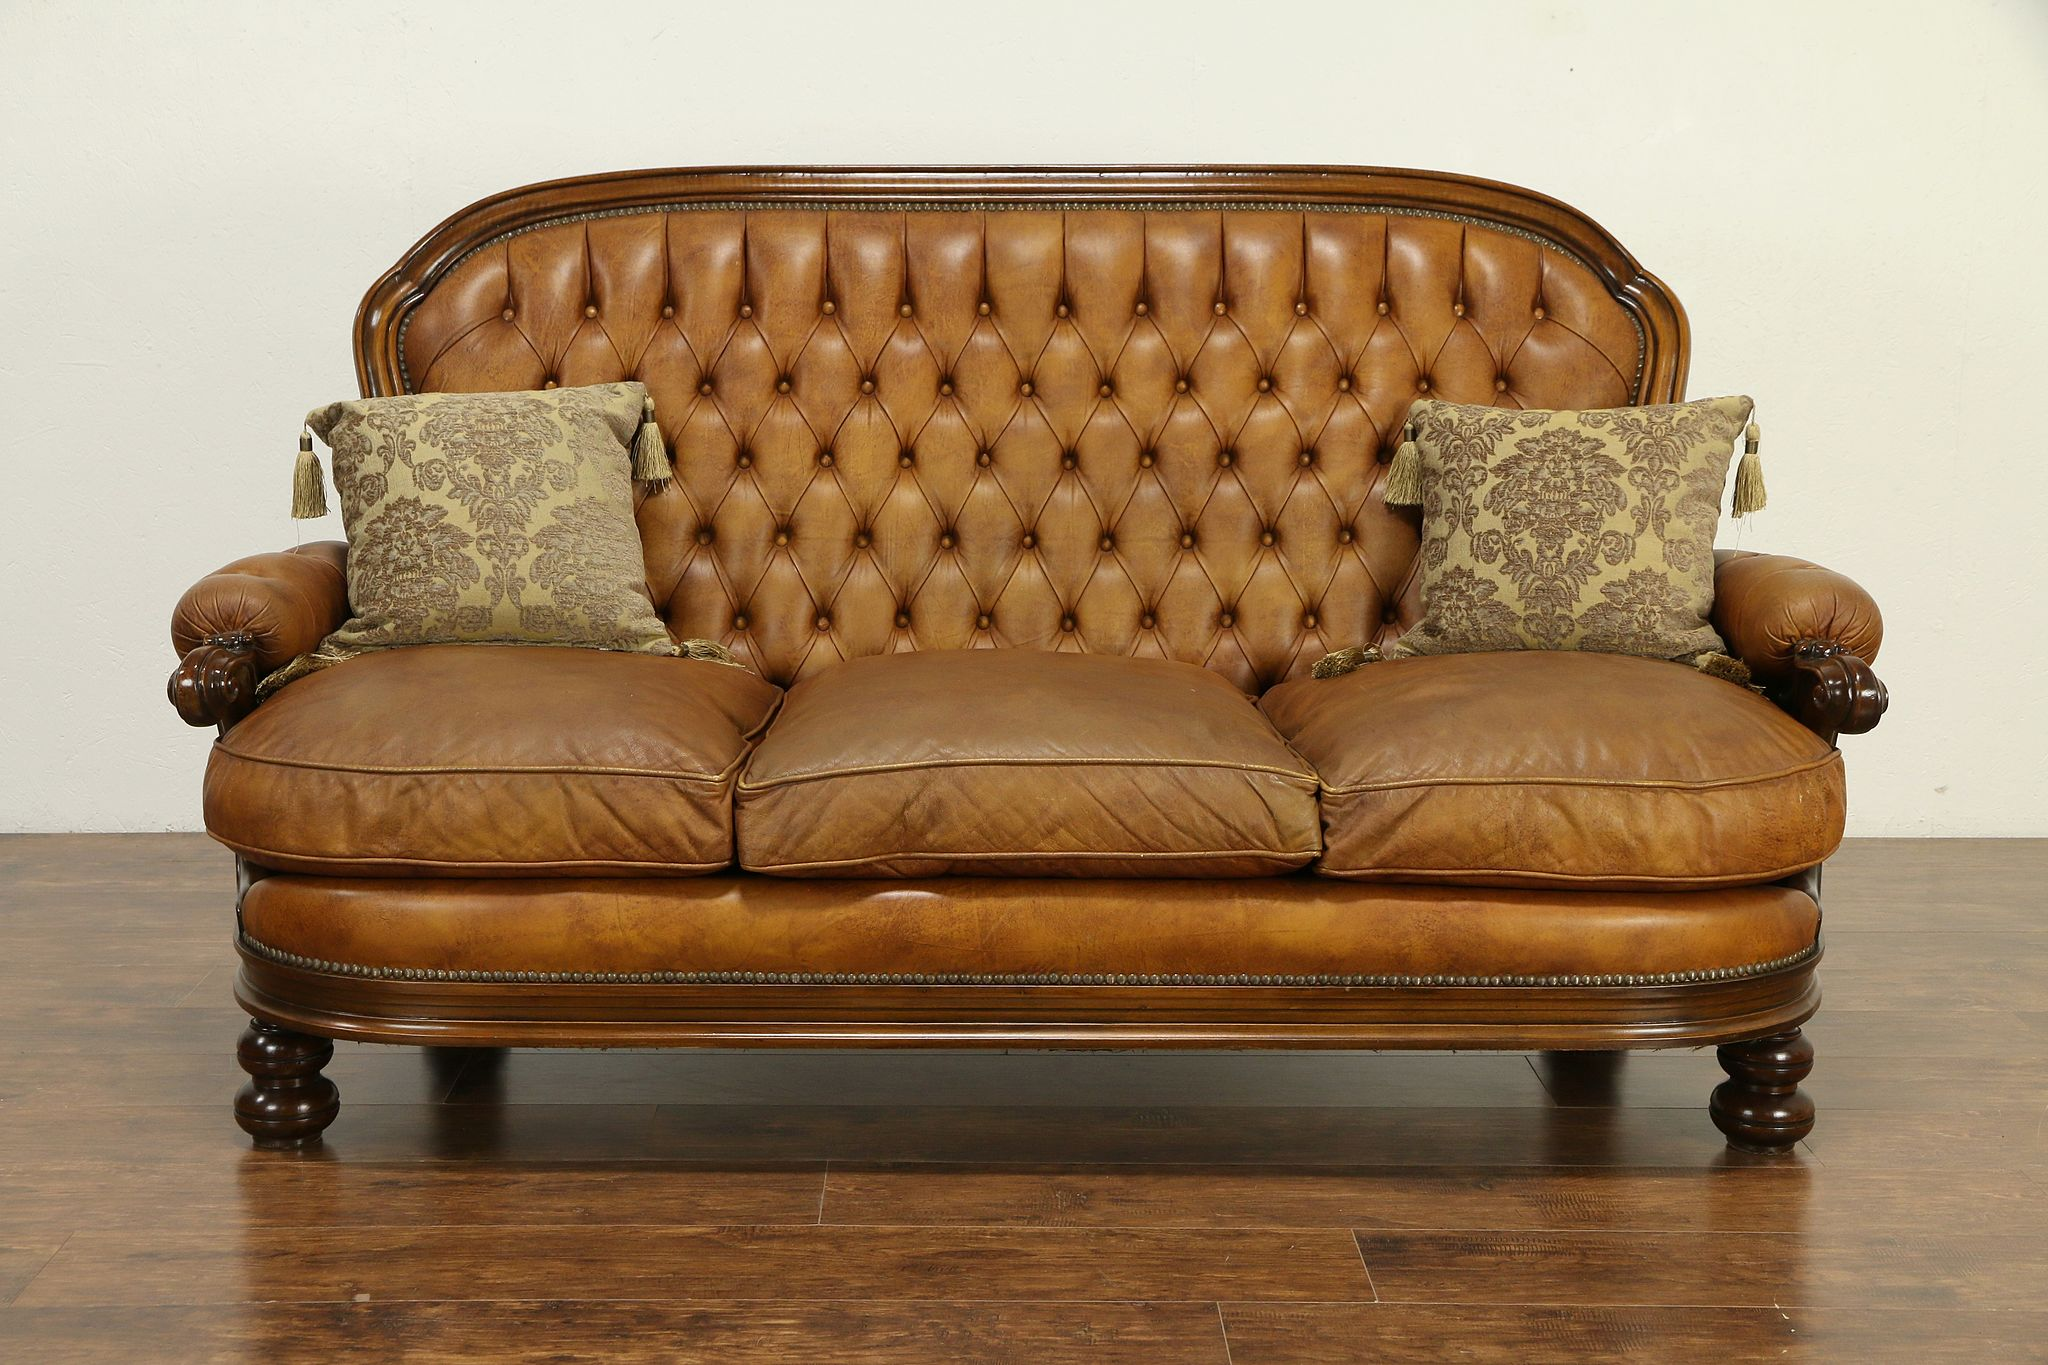 - SOLD - Italian Vintage Tufted Leather Sofa, Carved Fruitwood, Down